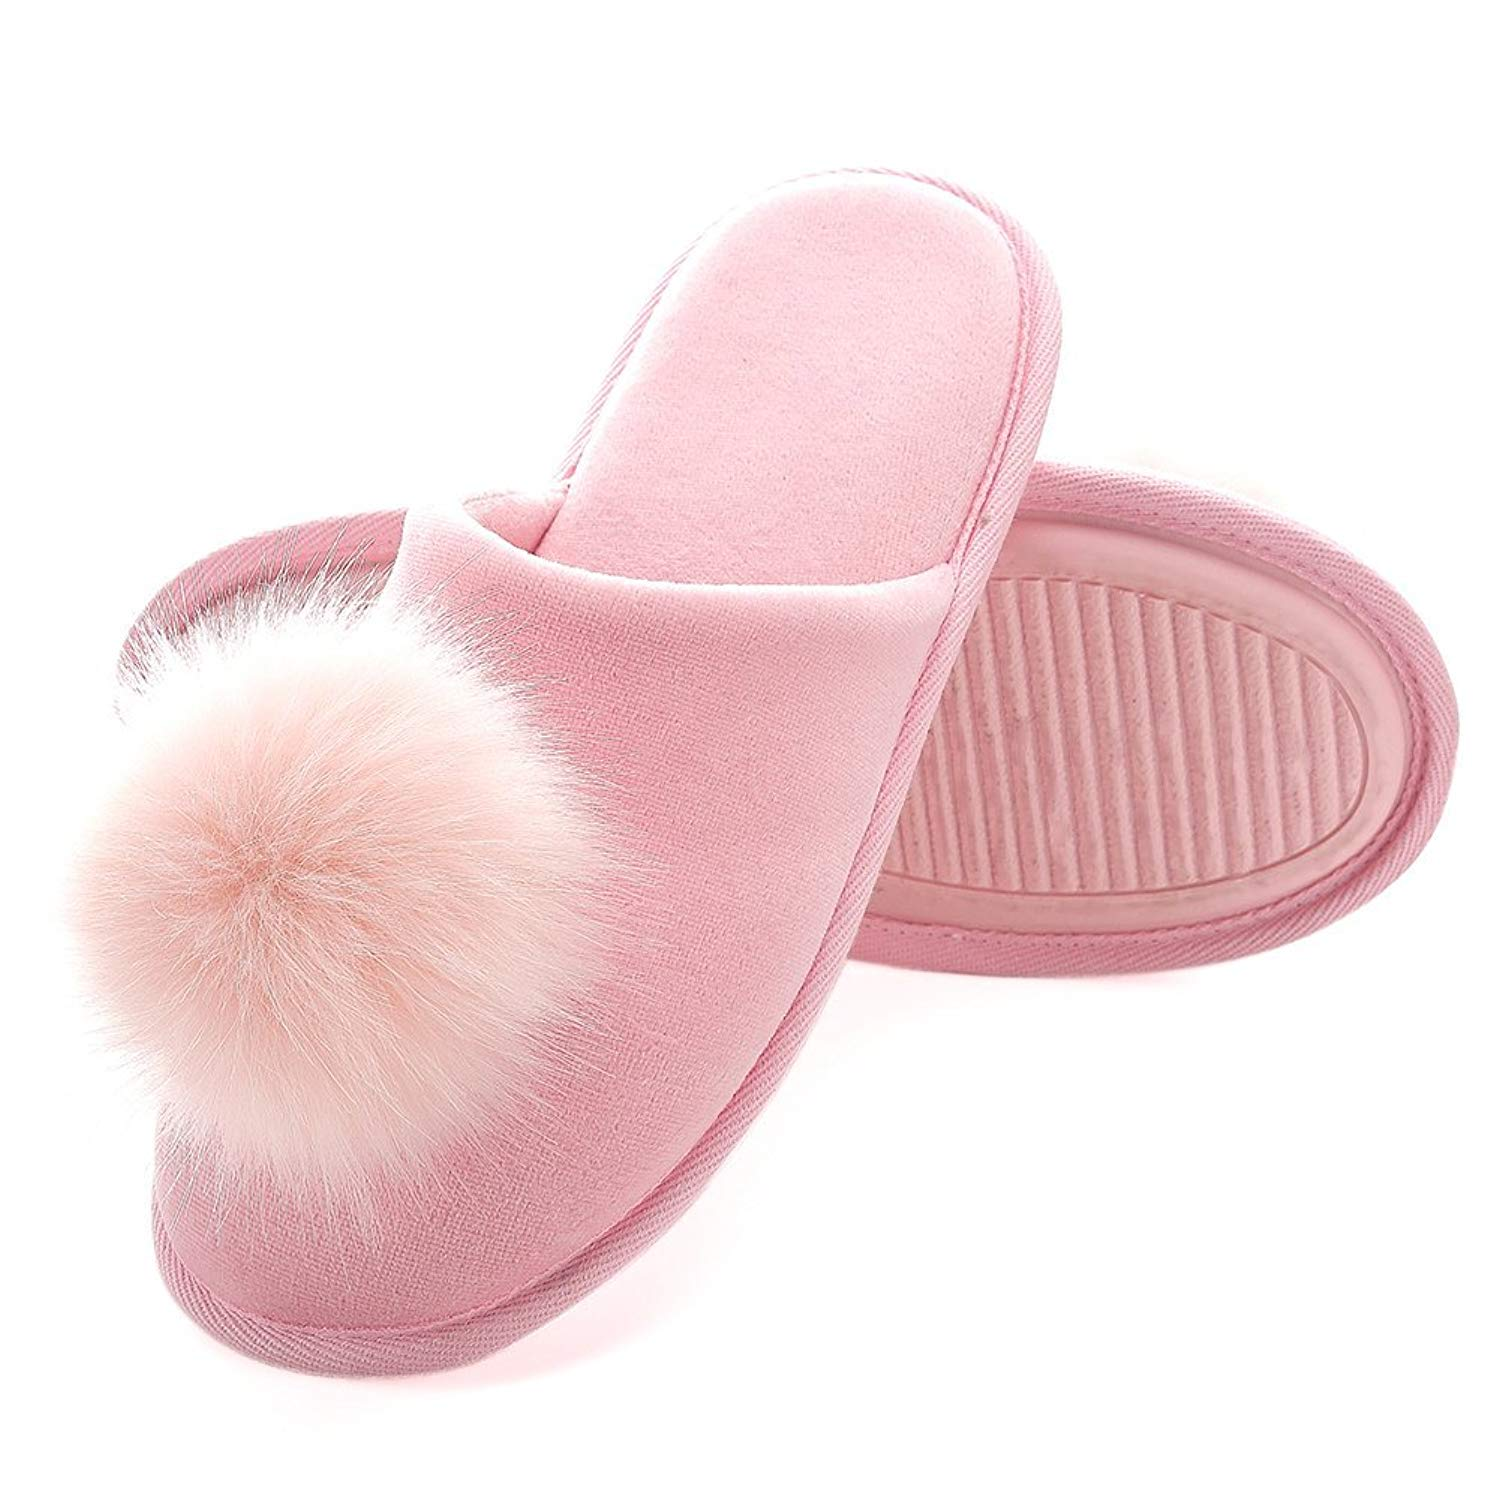 Women's Cozy Velvet Memory Foam Indoor Slippers Anti-Slip Soles Fuzzy Fluffy Slippers